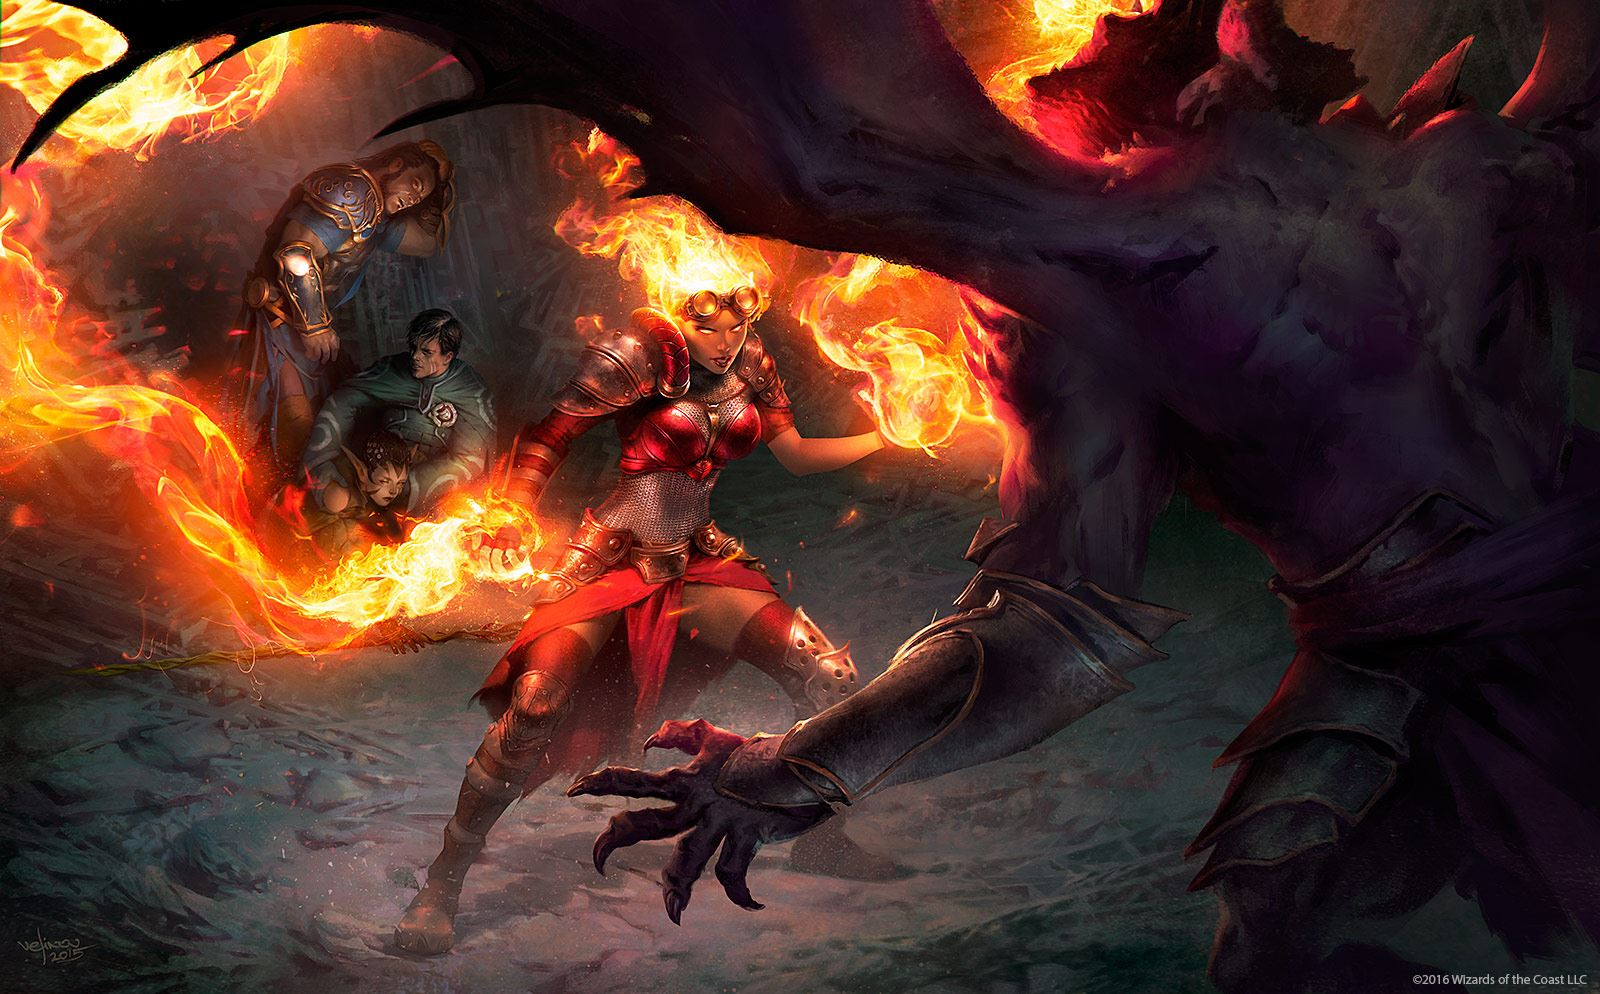 Tasha's Cauldron Of Everything: The Circle Of Wildfire Druid Gets Fiery Final Print In Wizards Of The Coast's Newest Rules Expansion